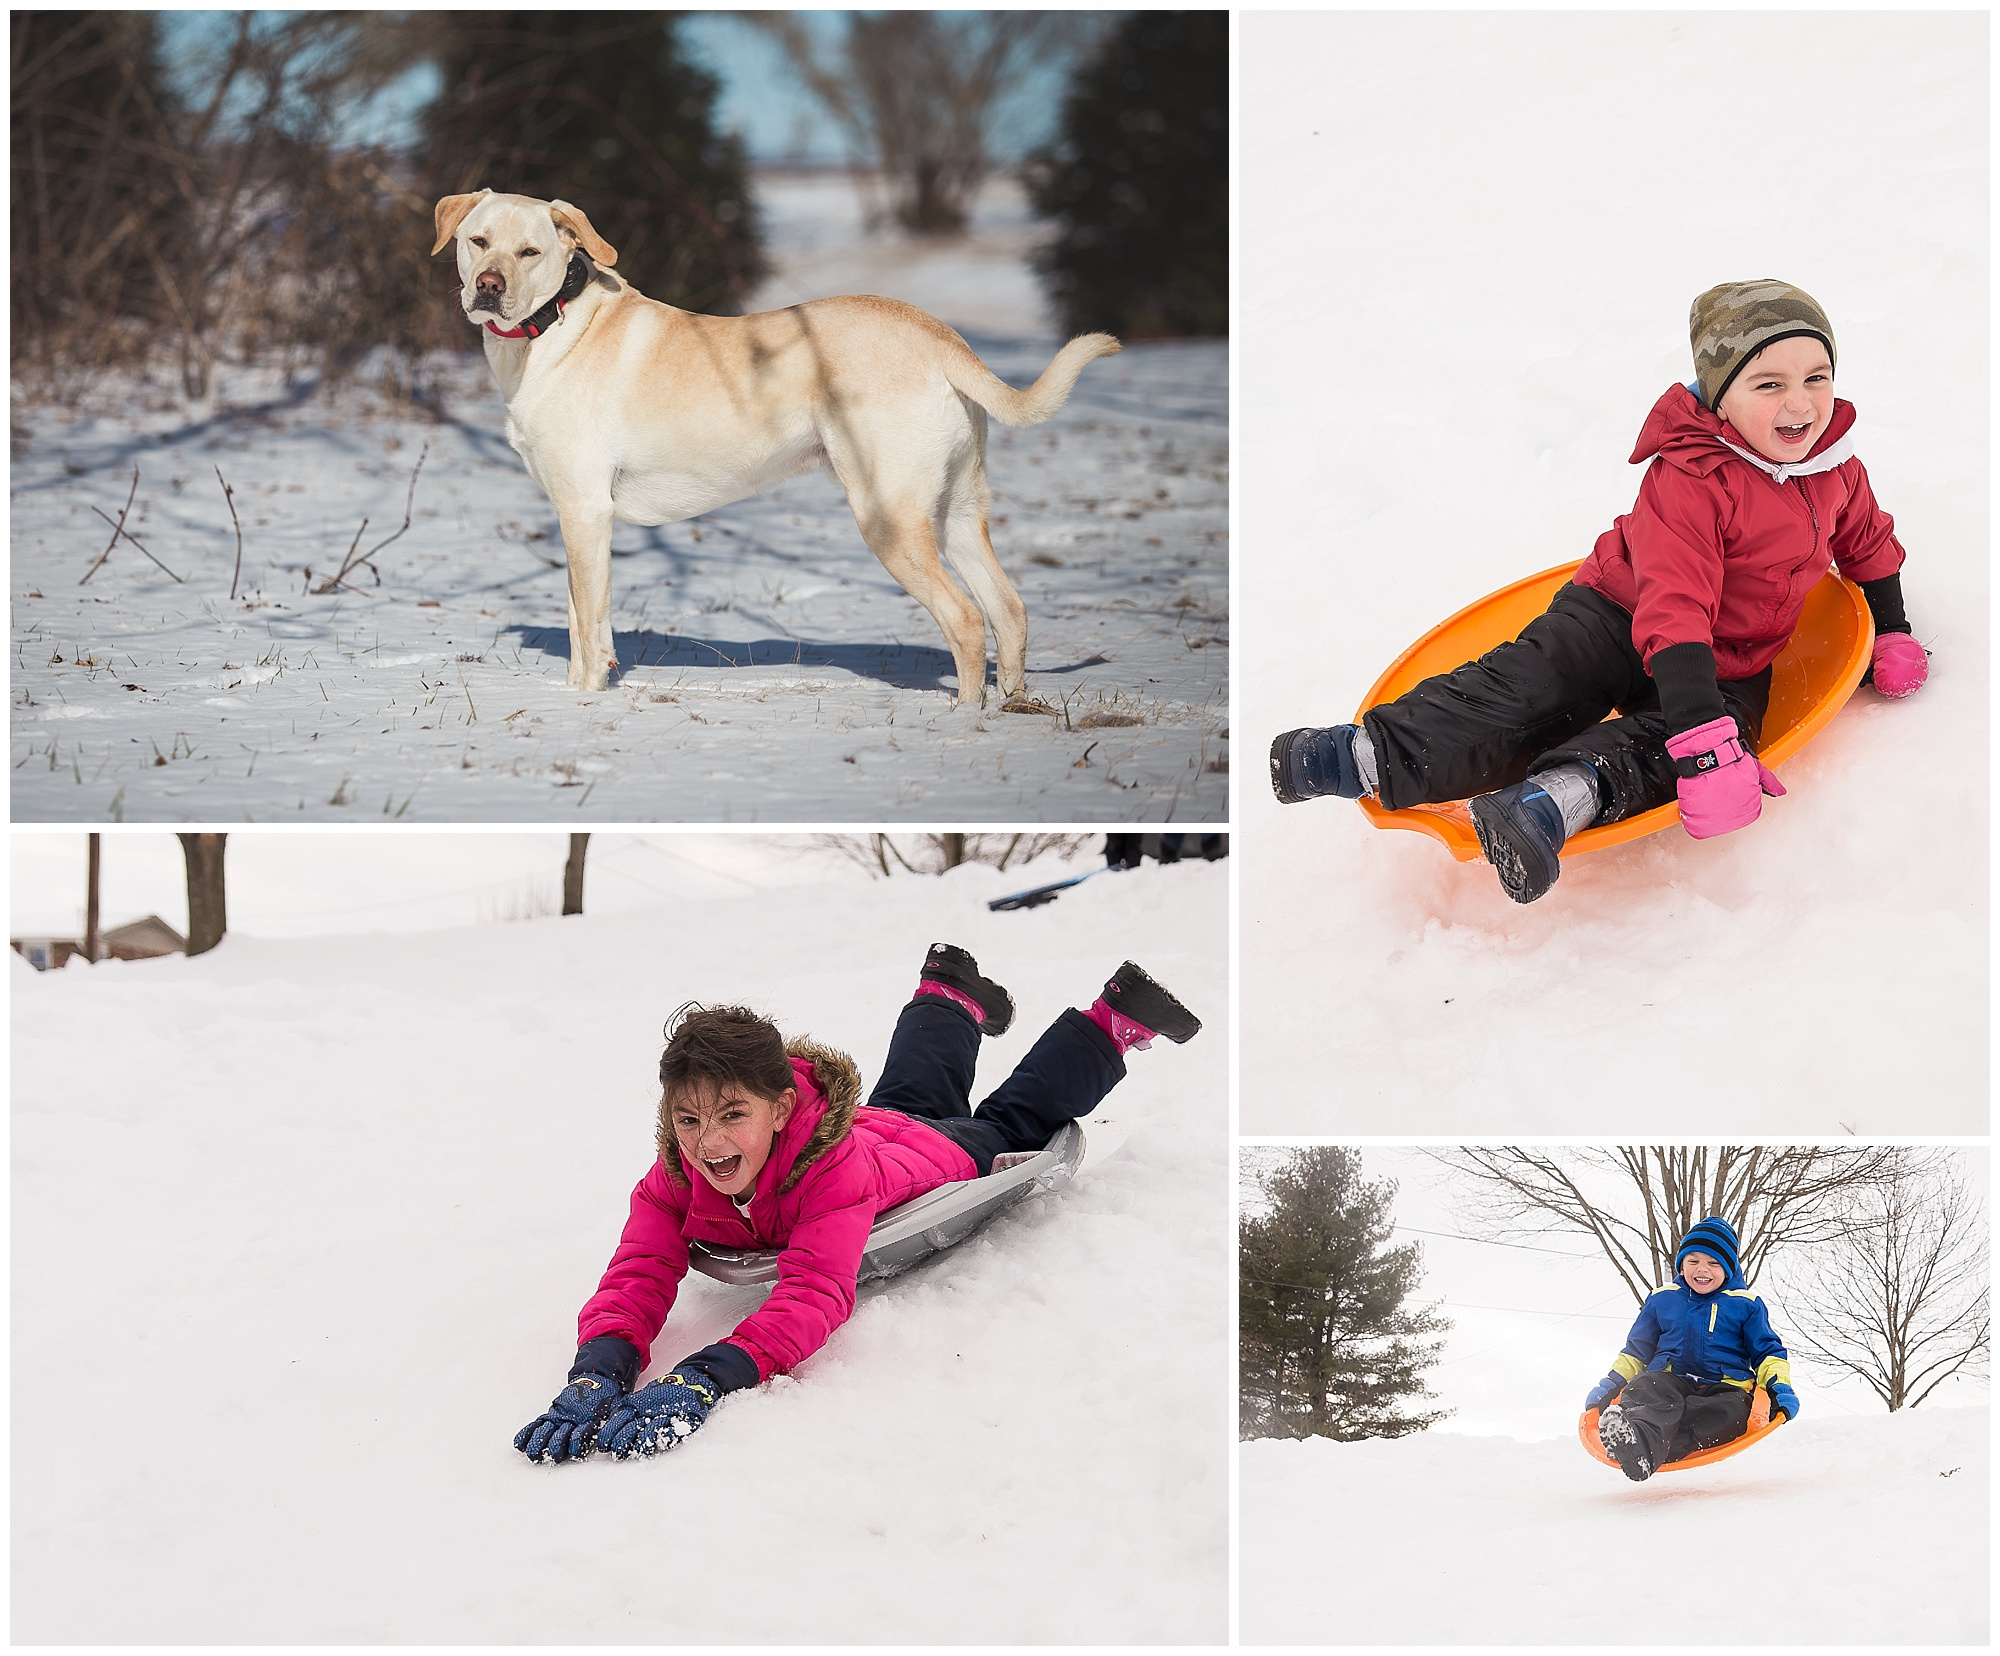 Exposure compensation 4 tips for better photos in the snow kristina rose photography